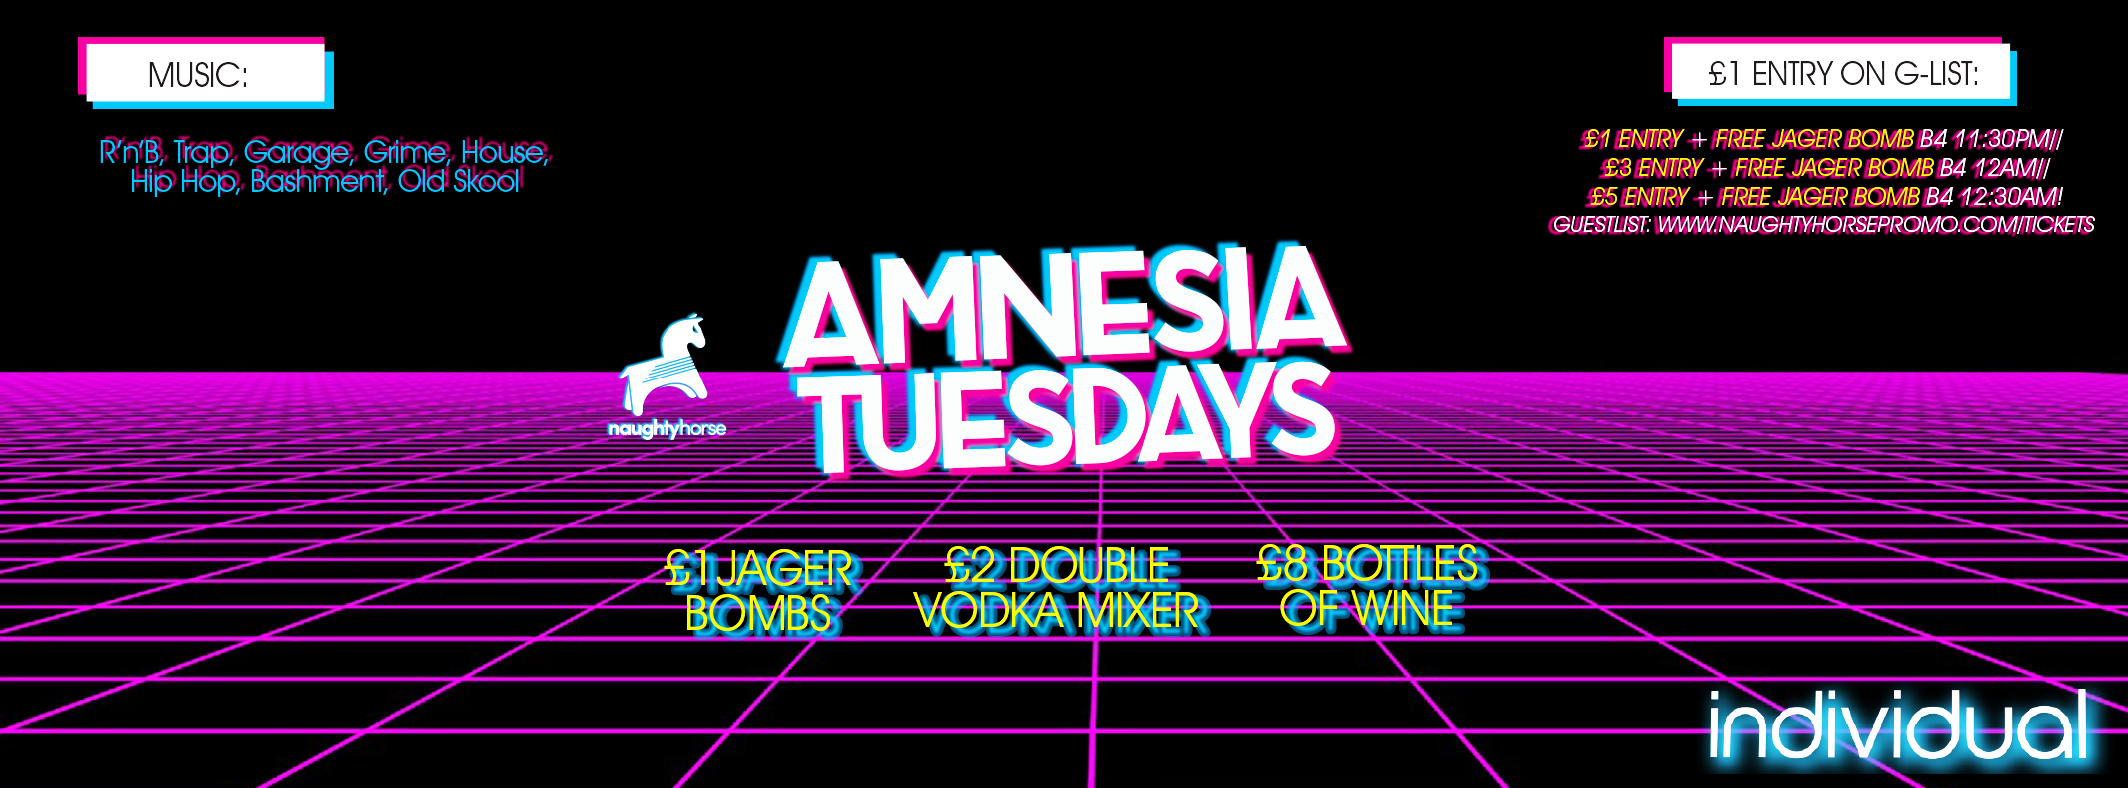 AMNESIA TUESDAYS – End of Term Part 2! £1 Entry + FREE JAGERBOMB Guestlist*!